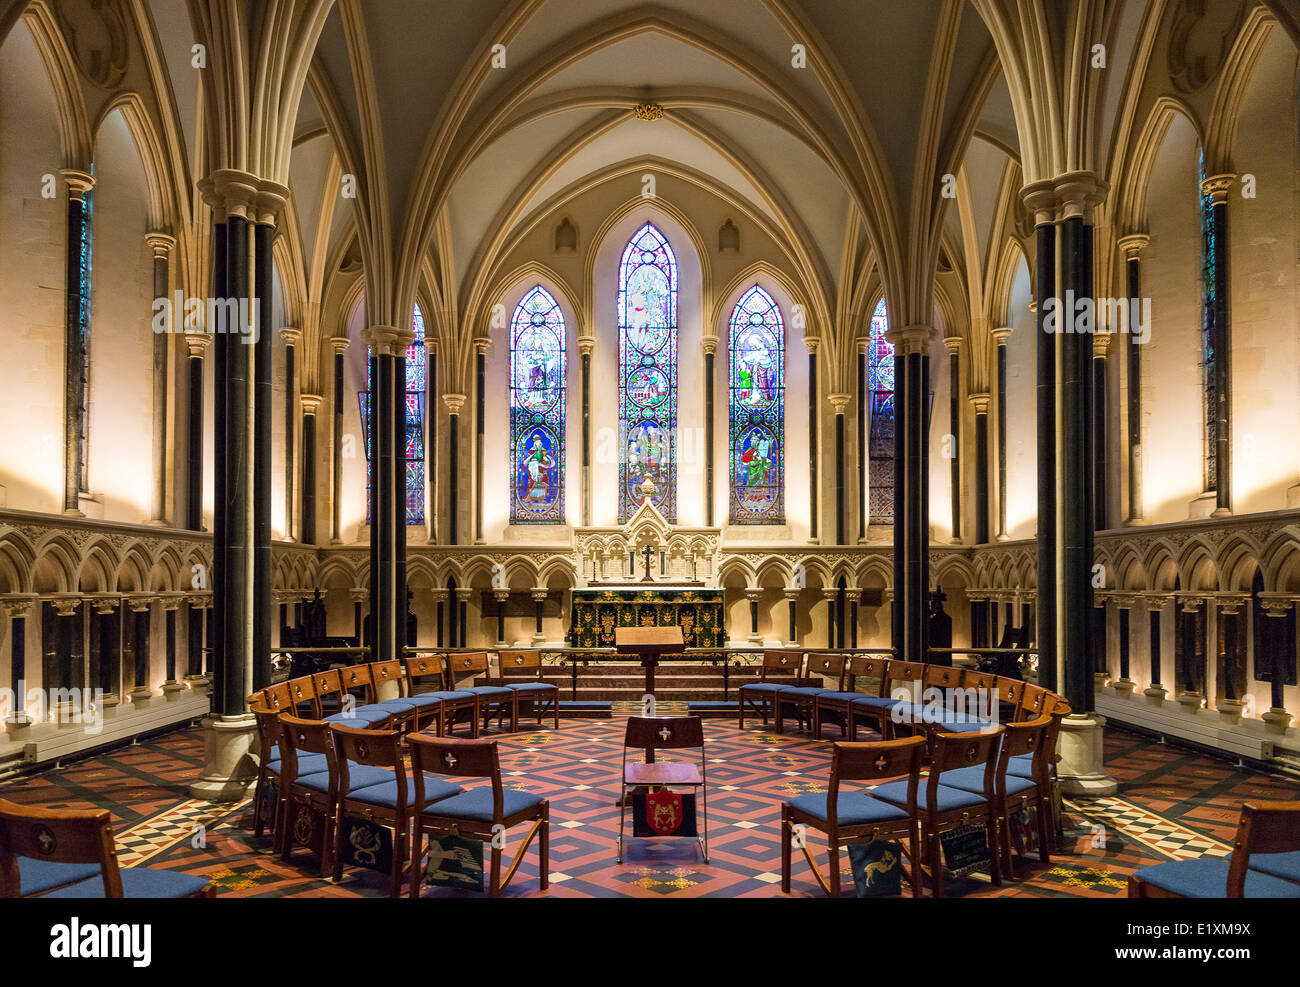 Ireland, Dublin, the interior of the St Patrik's cathedral - Stock Image